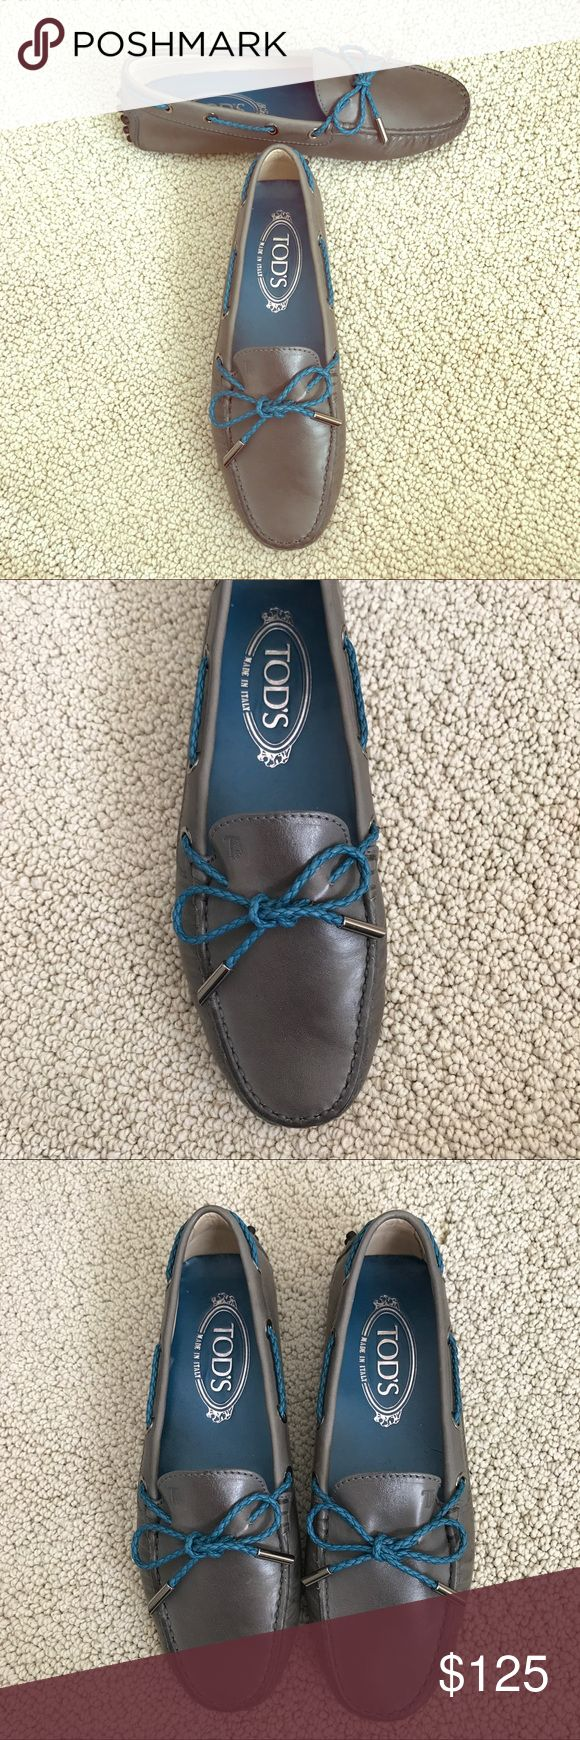 TOD'S- Gommino Grey Leather Driving Loafer So stylish and perfect dressed up or down! Tod's Gommino Leather Driving Loafers in grey with blue lacing. Italian size 36. DETAILS Made in Italy Leather upper Stamped Tod's monogram Exposed hand stitching Rubber pebble outsole Rubber pebble detailing on the heel Excellent preworn condition. No trades please! Tod's Shoes Flats & Loafers